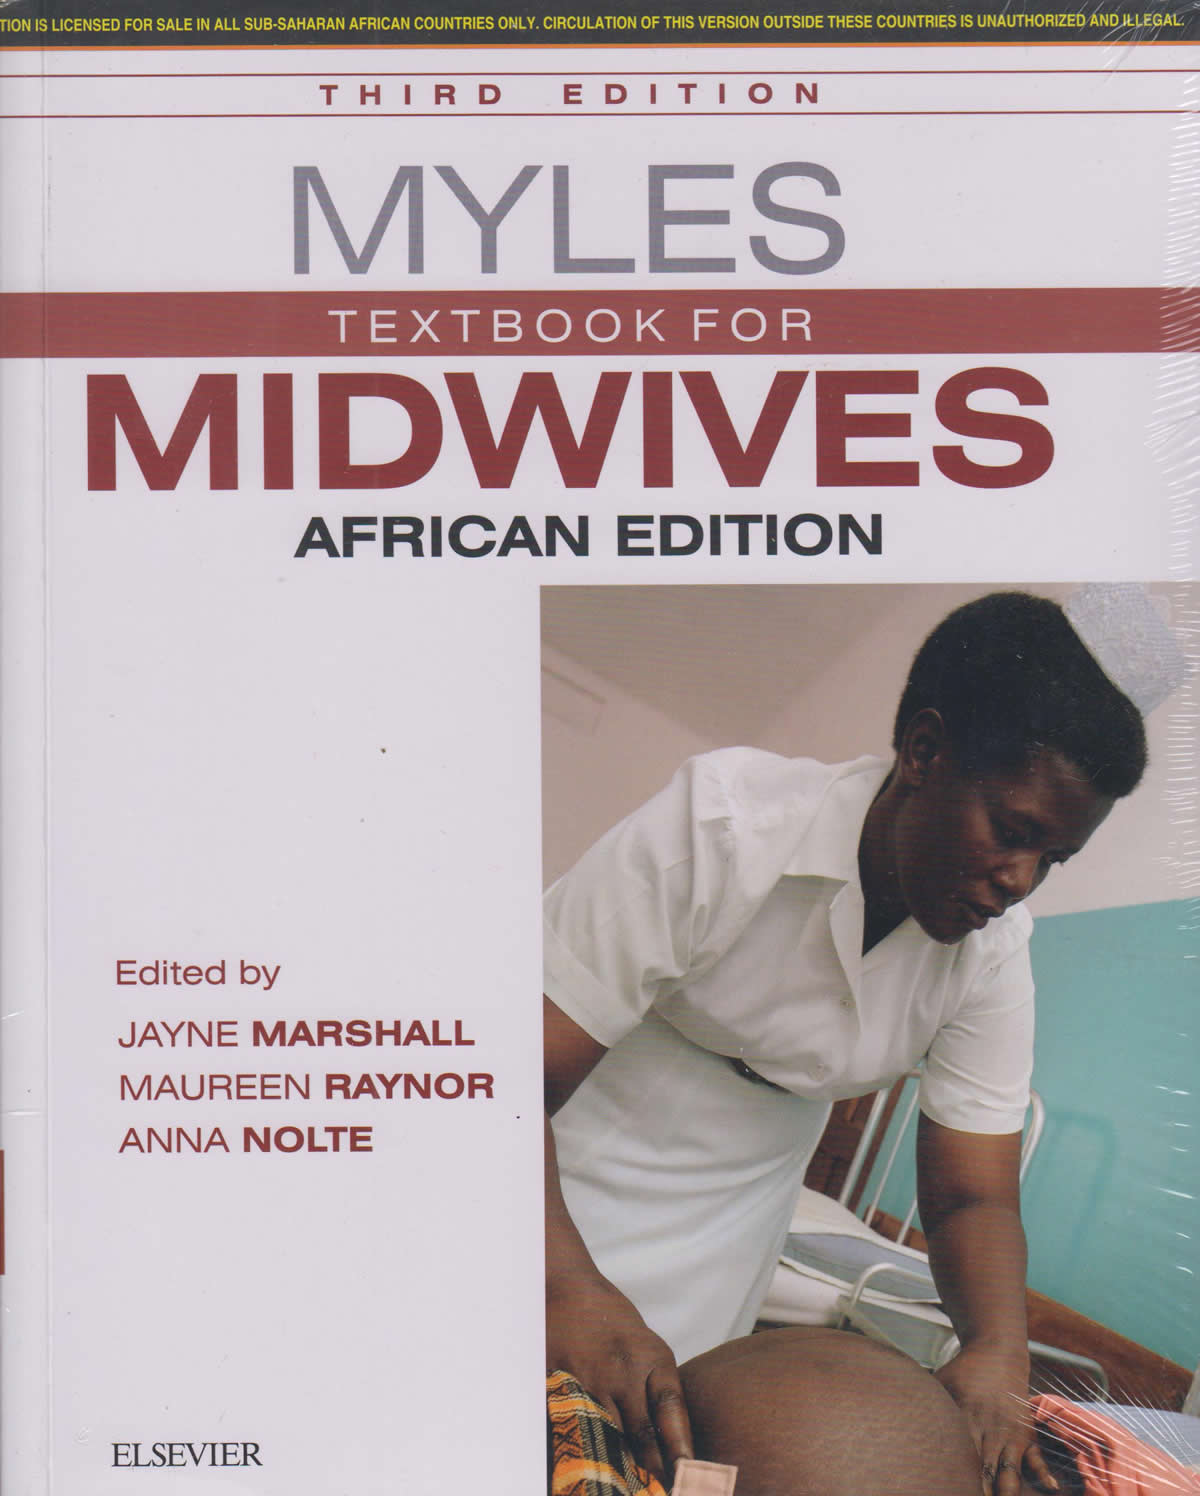 Myles Textbook for Midwives African Edition 3